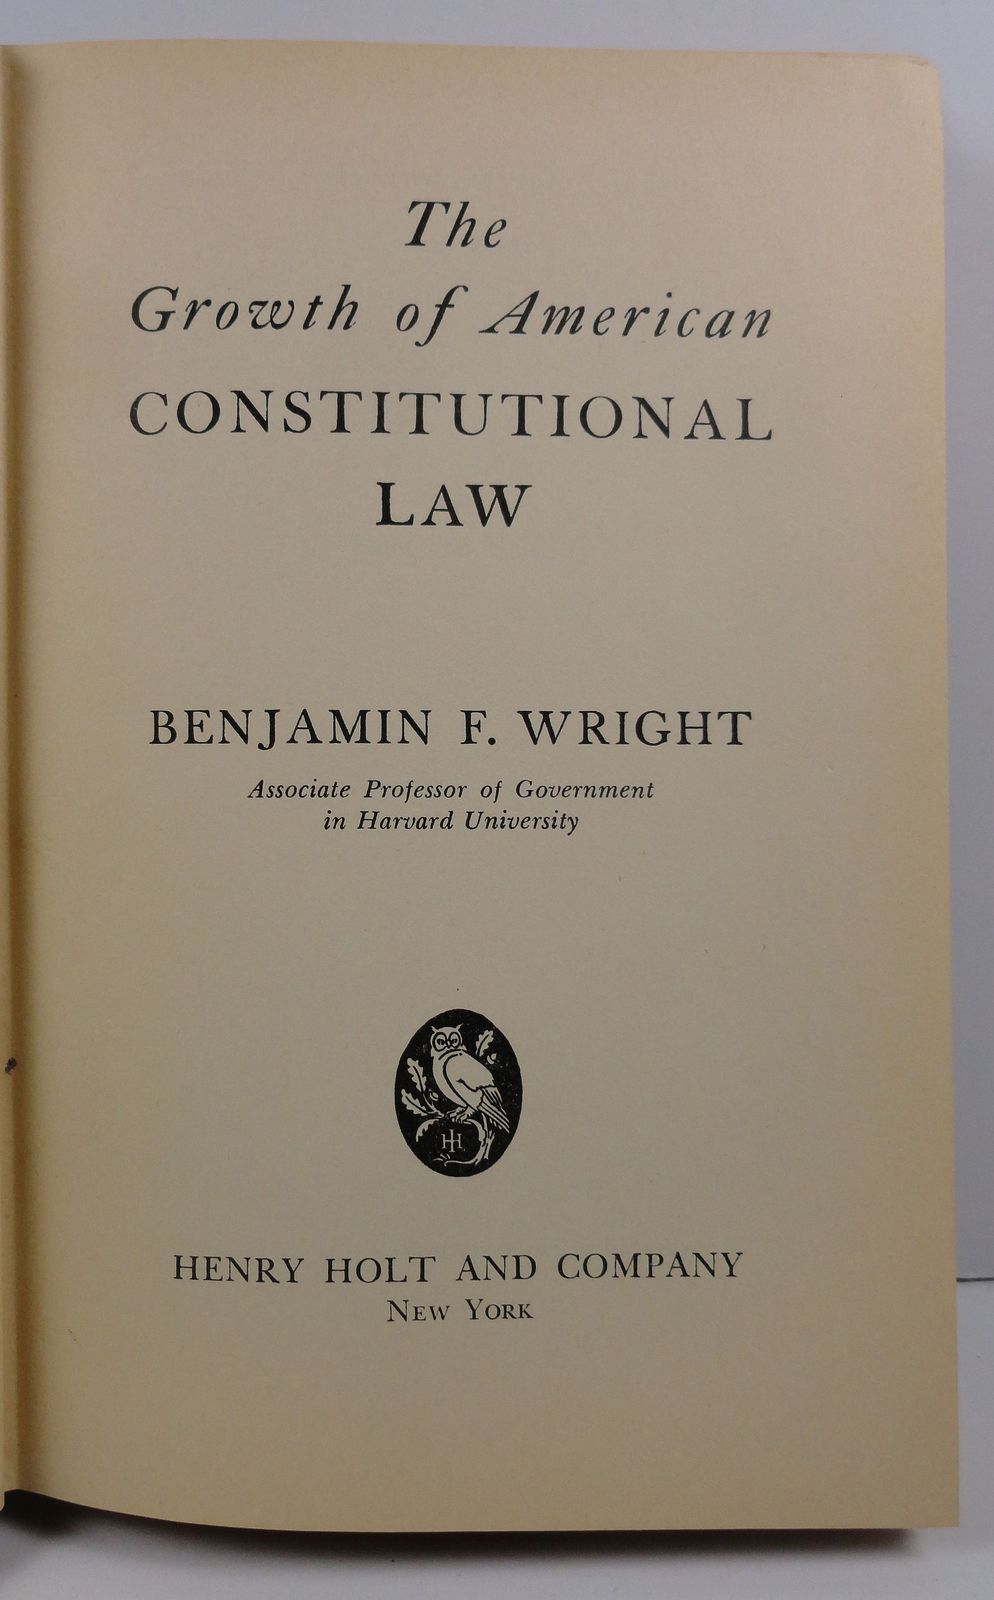 The Growth of American Constitutional Law Benjamin F. Wright